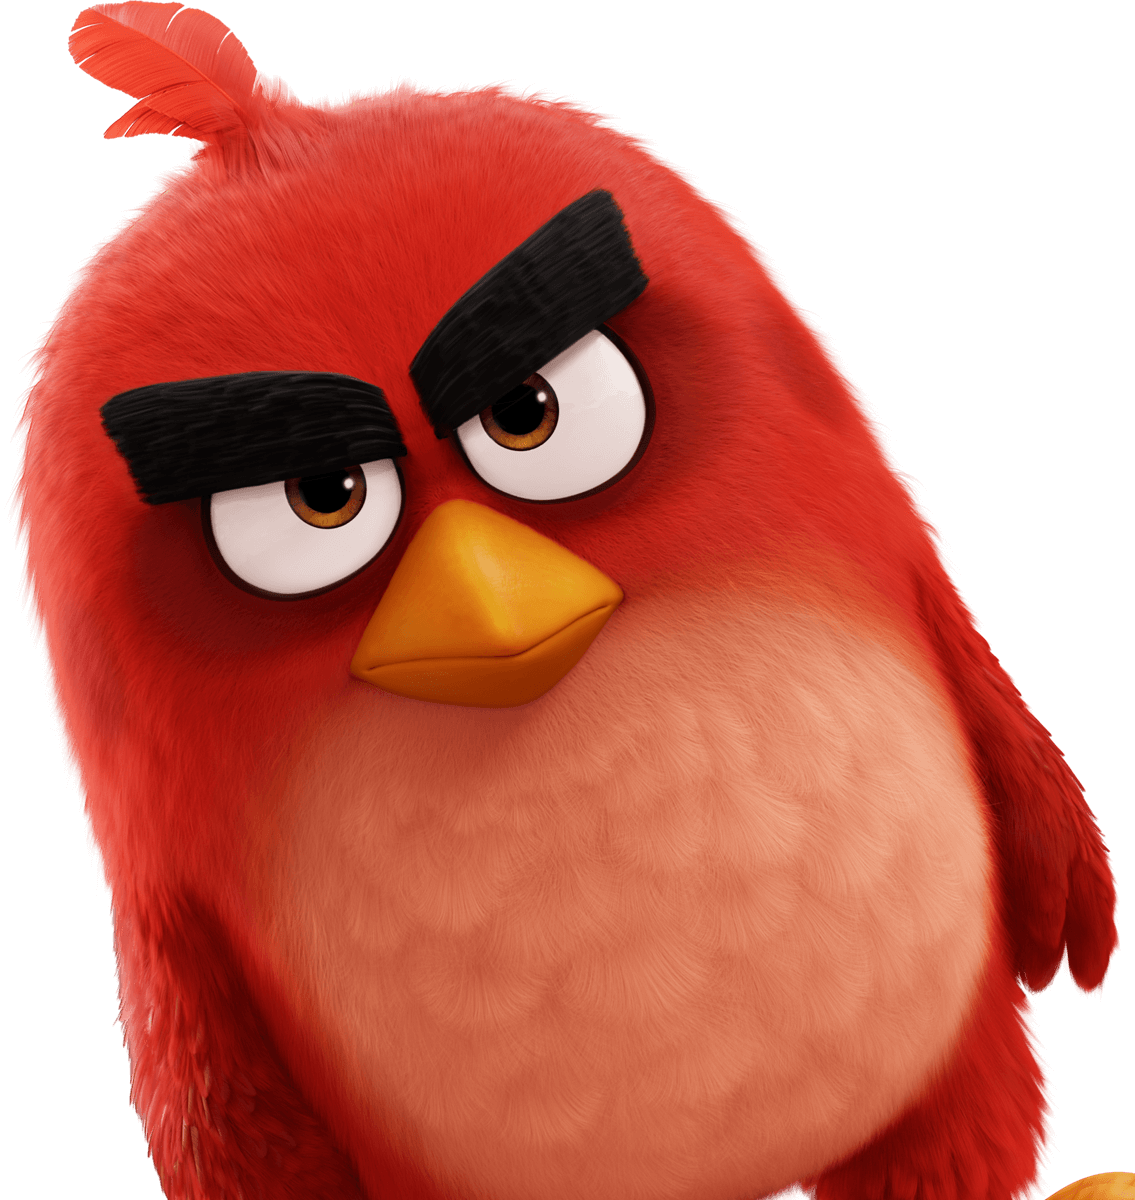 Angry birds movie png. Red image